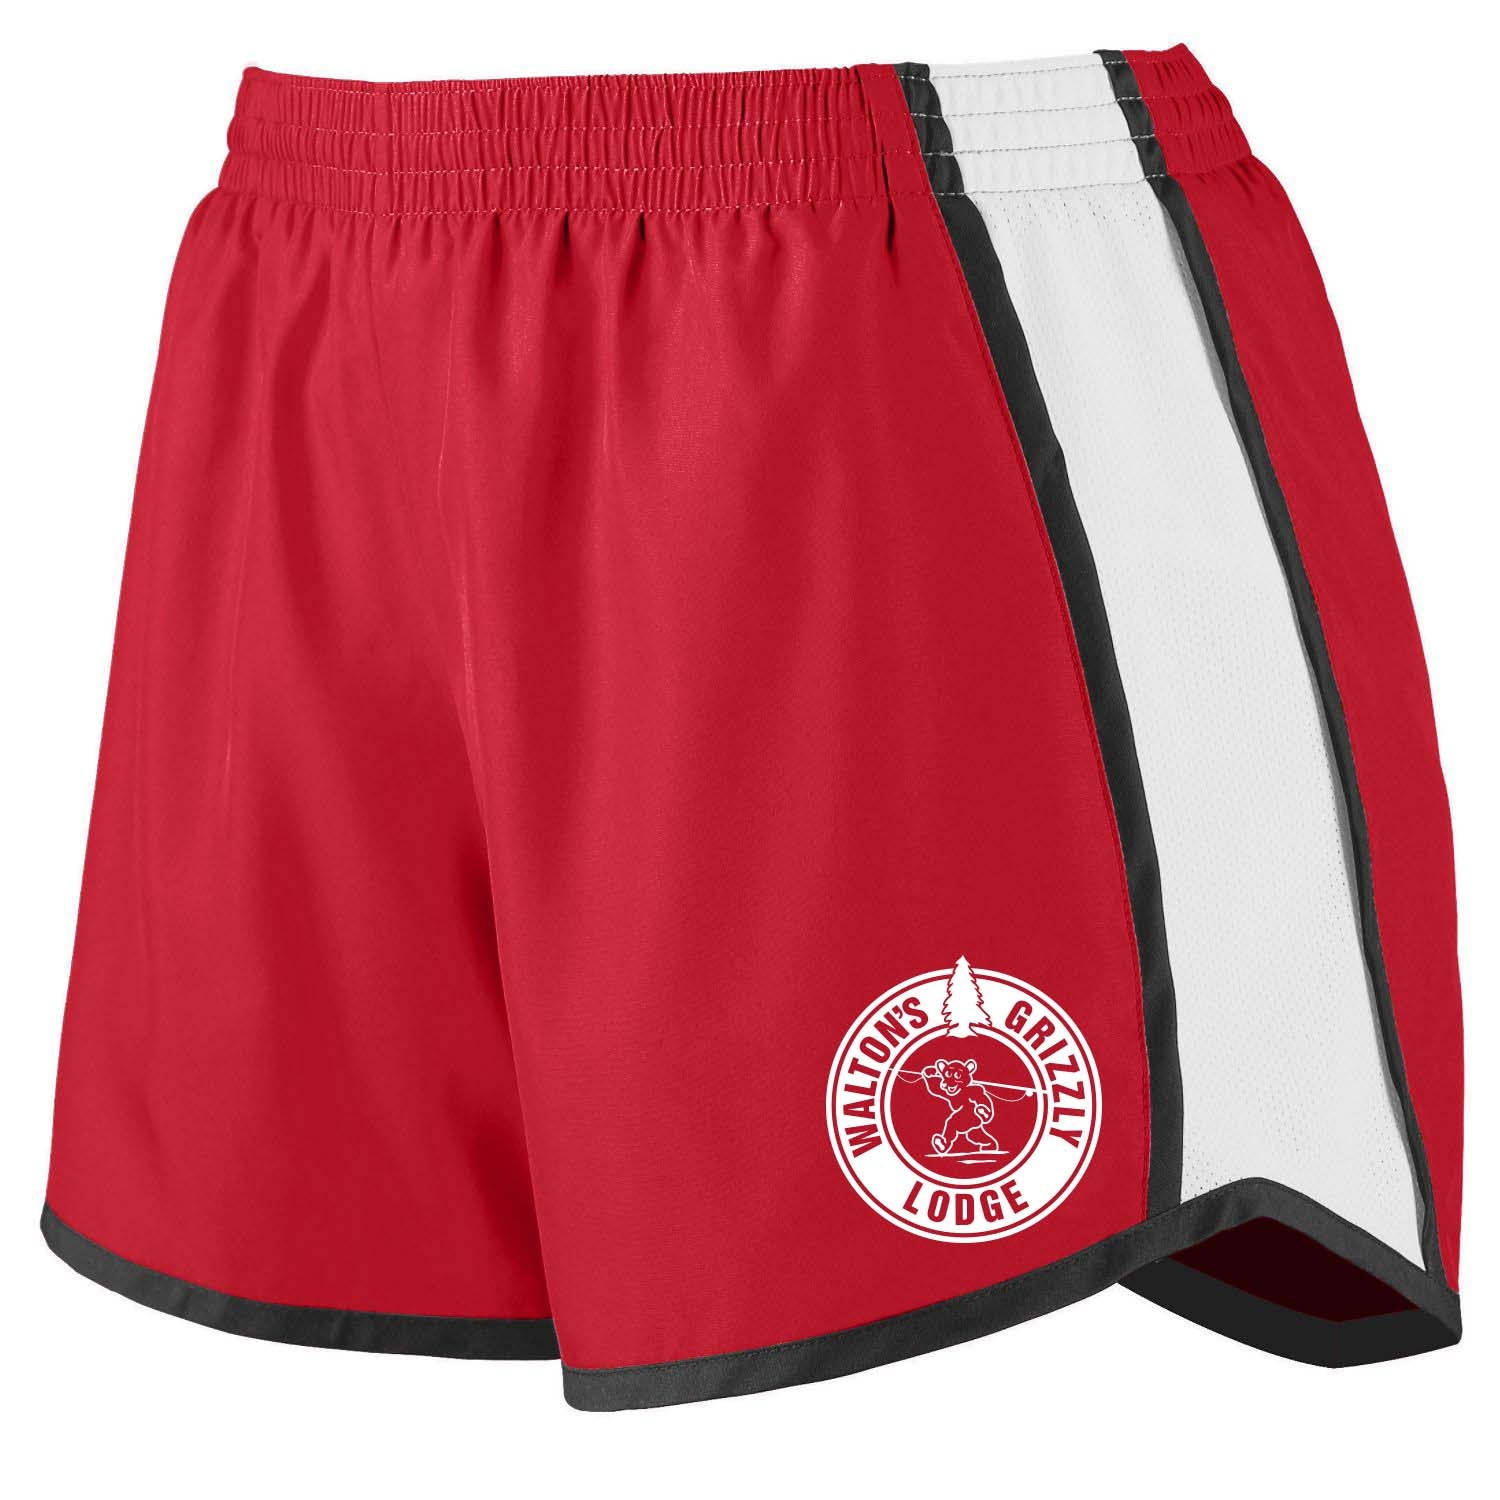 Walton's Grizzly Lodge Running Shorts